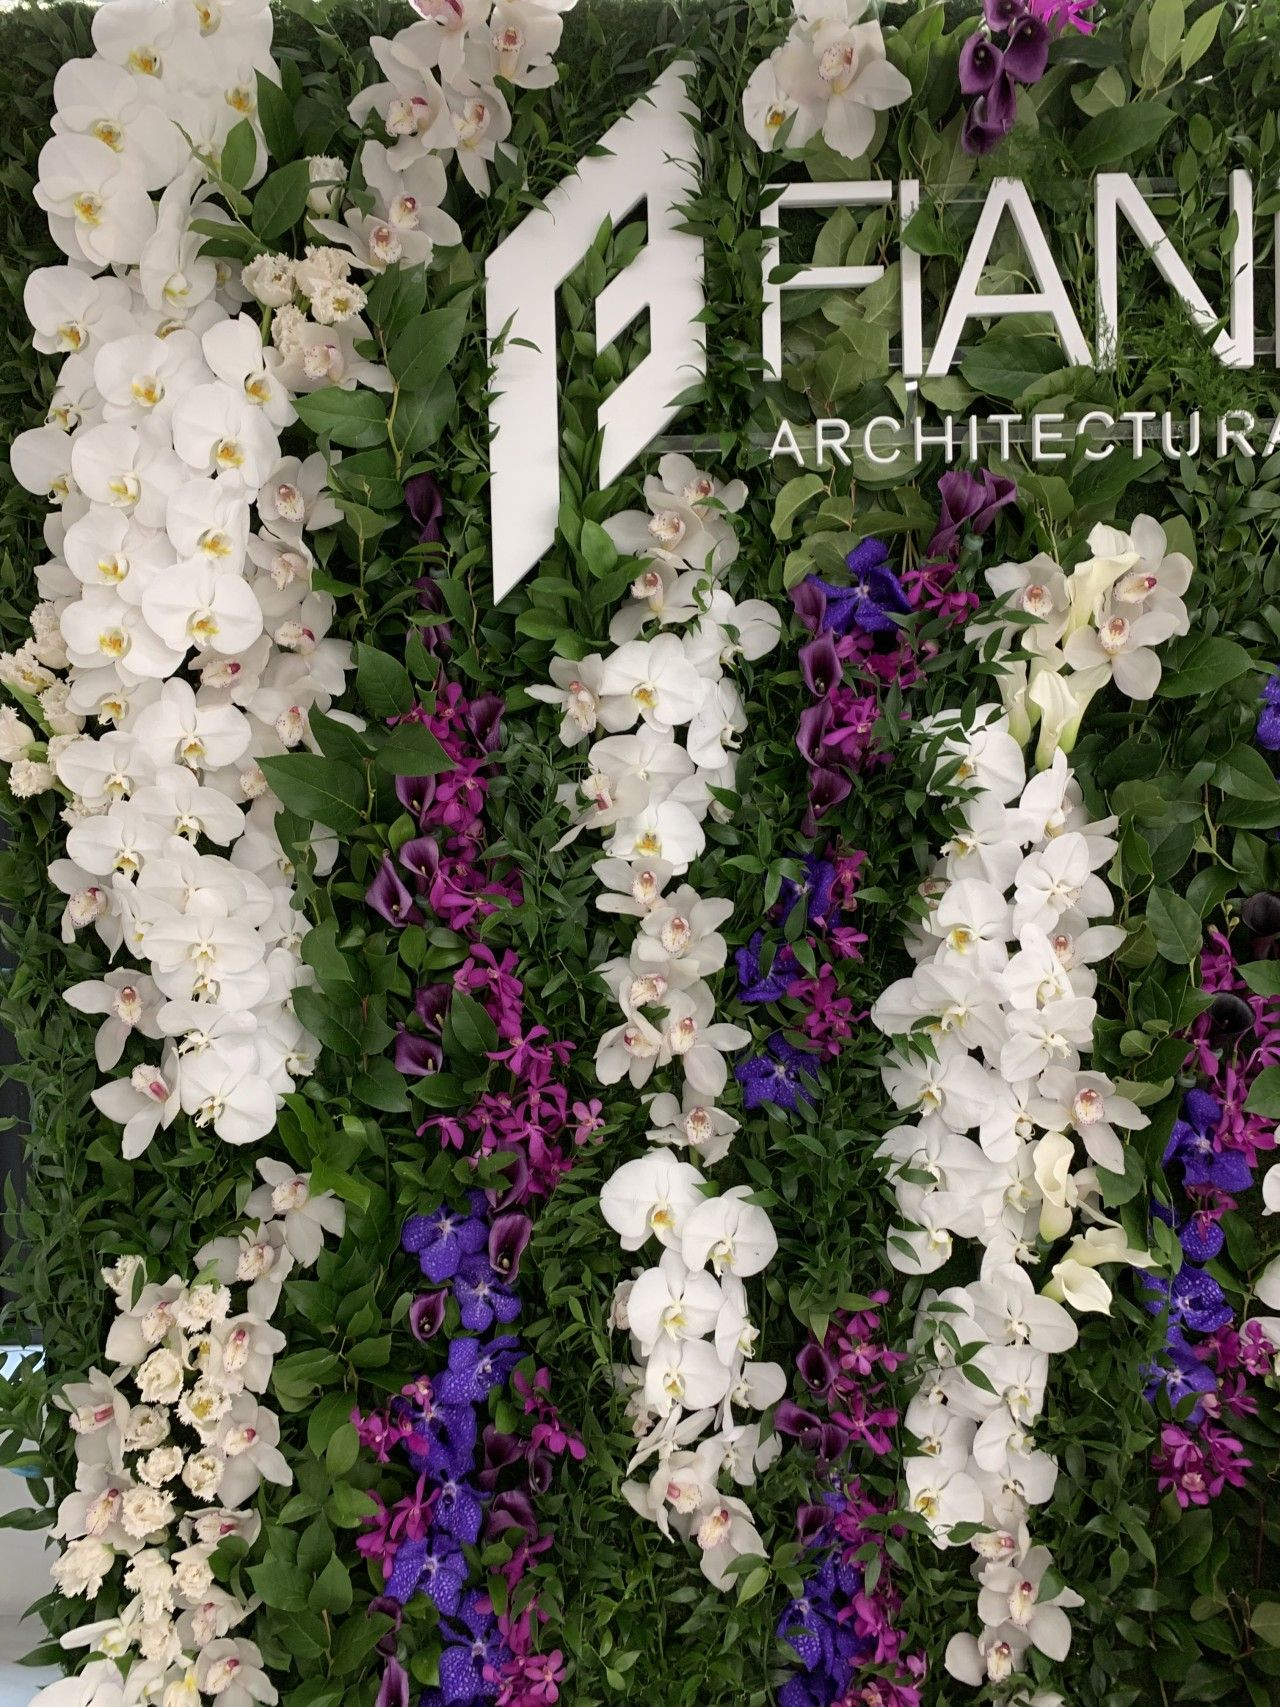 100 Flower Walls Ideas In 2021 Flower Wall Floral Event Design Floral